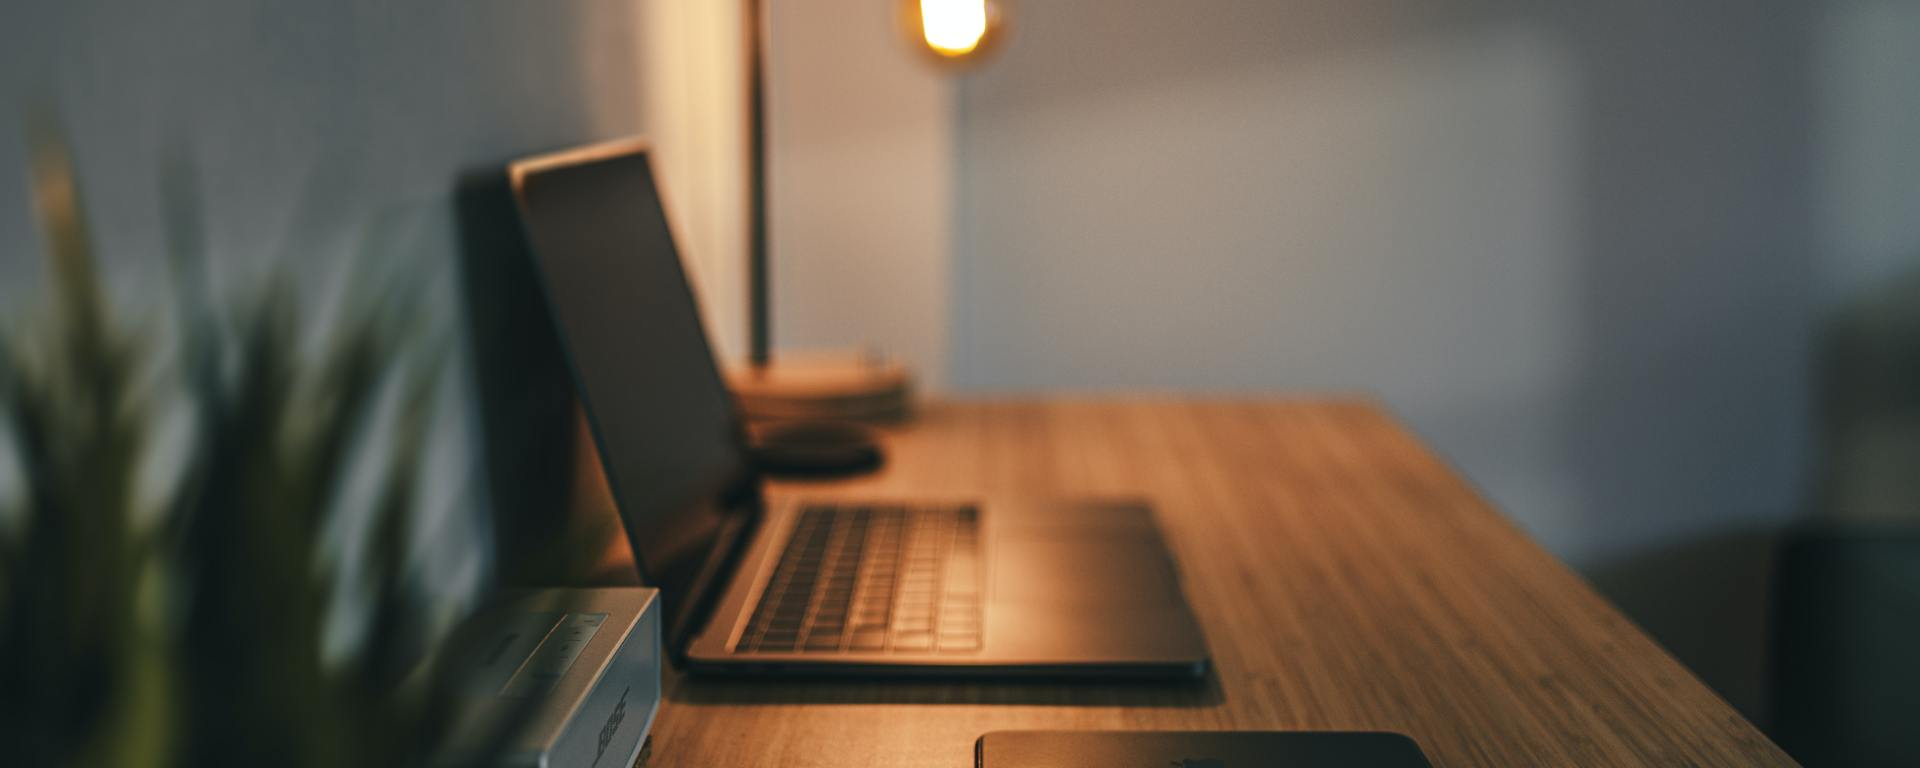 An image of a laptop and phone on a wooden desk with a lamp in the background.